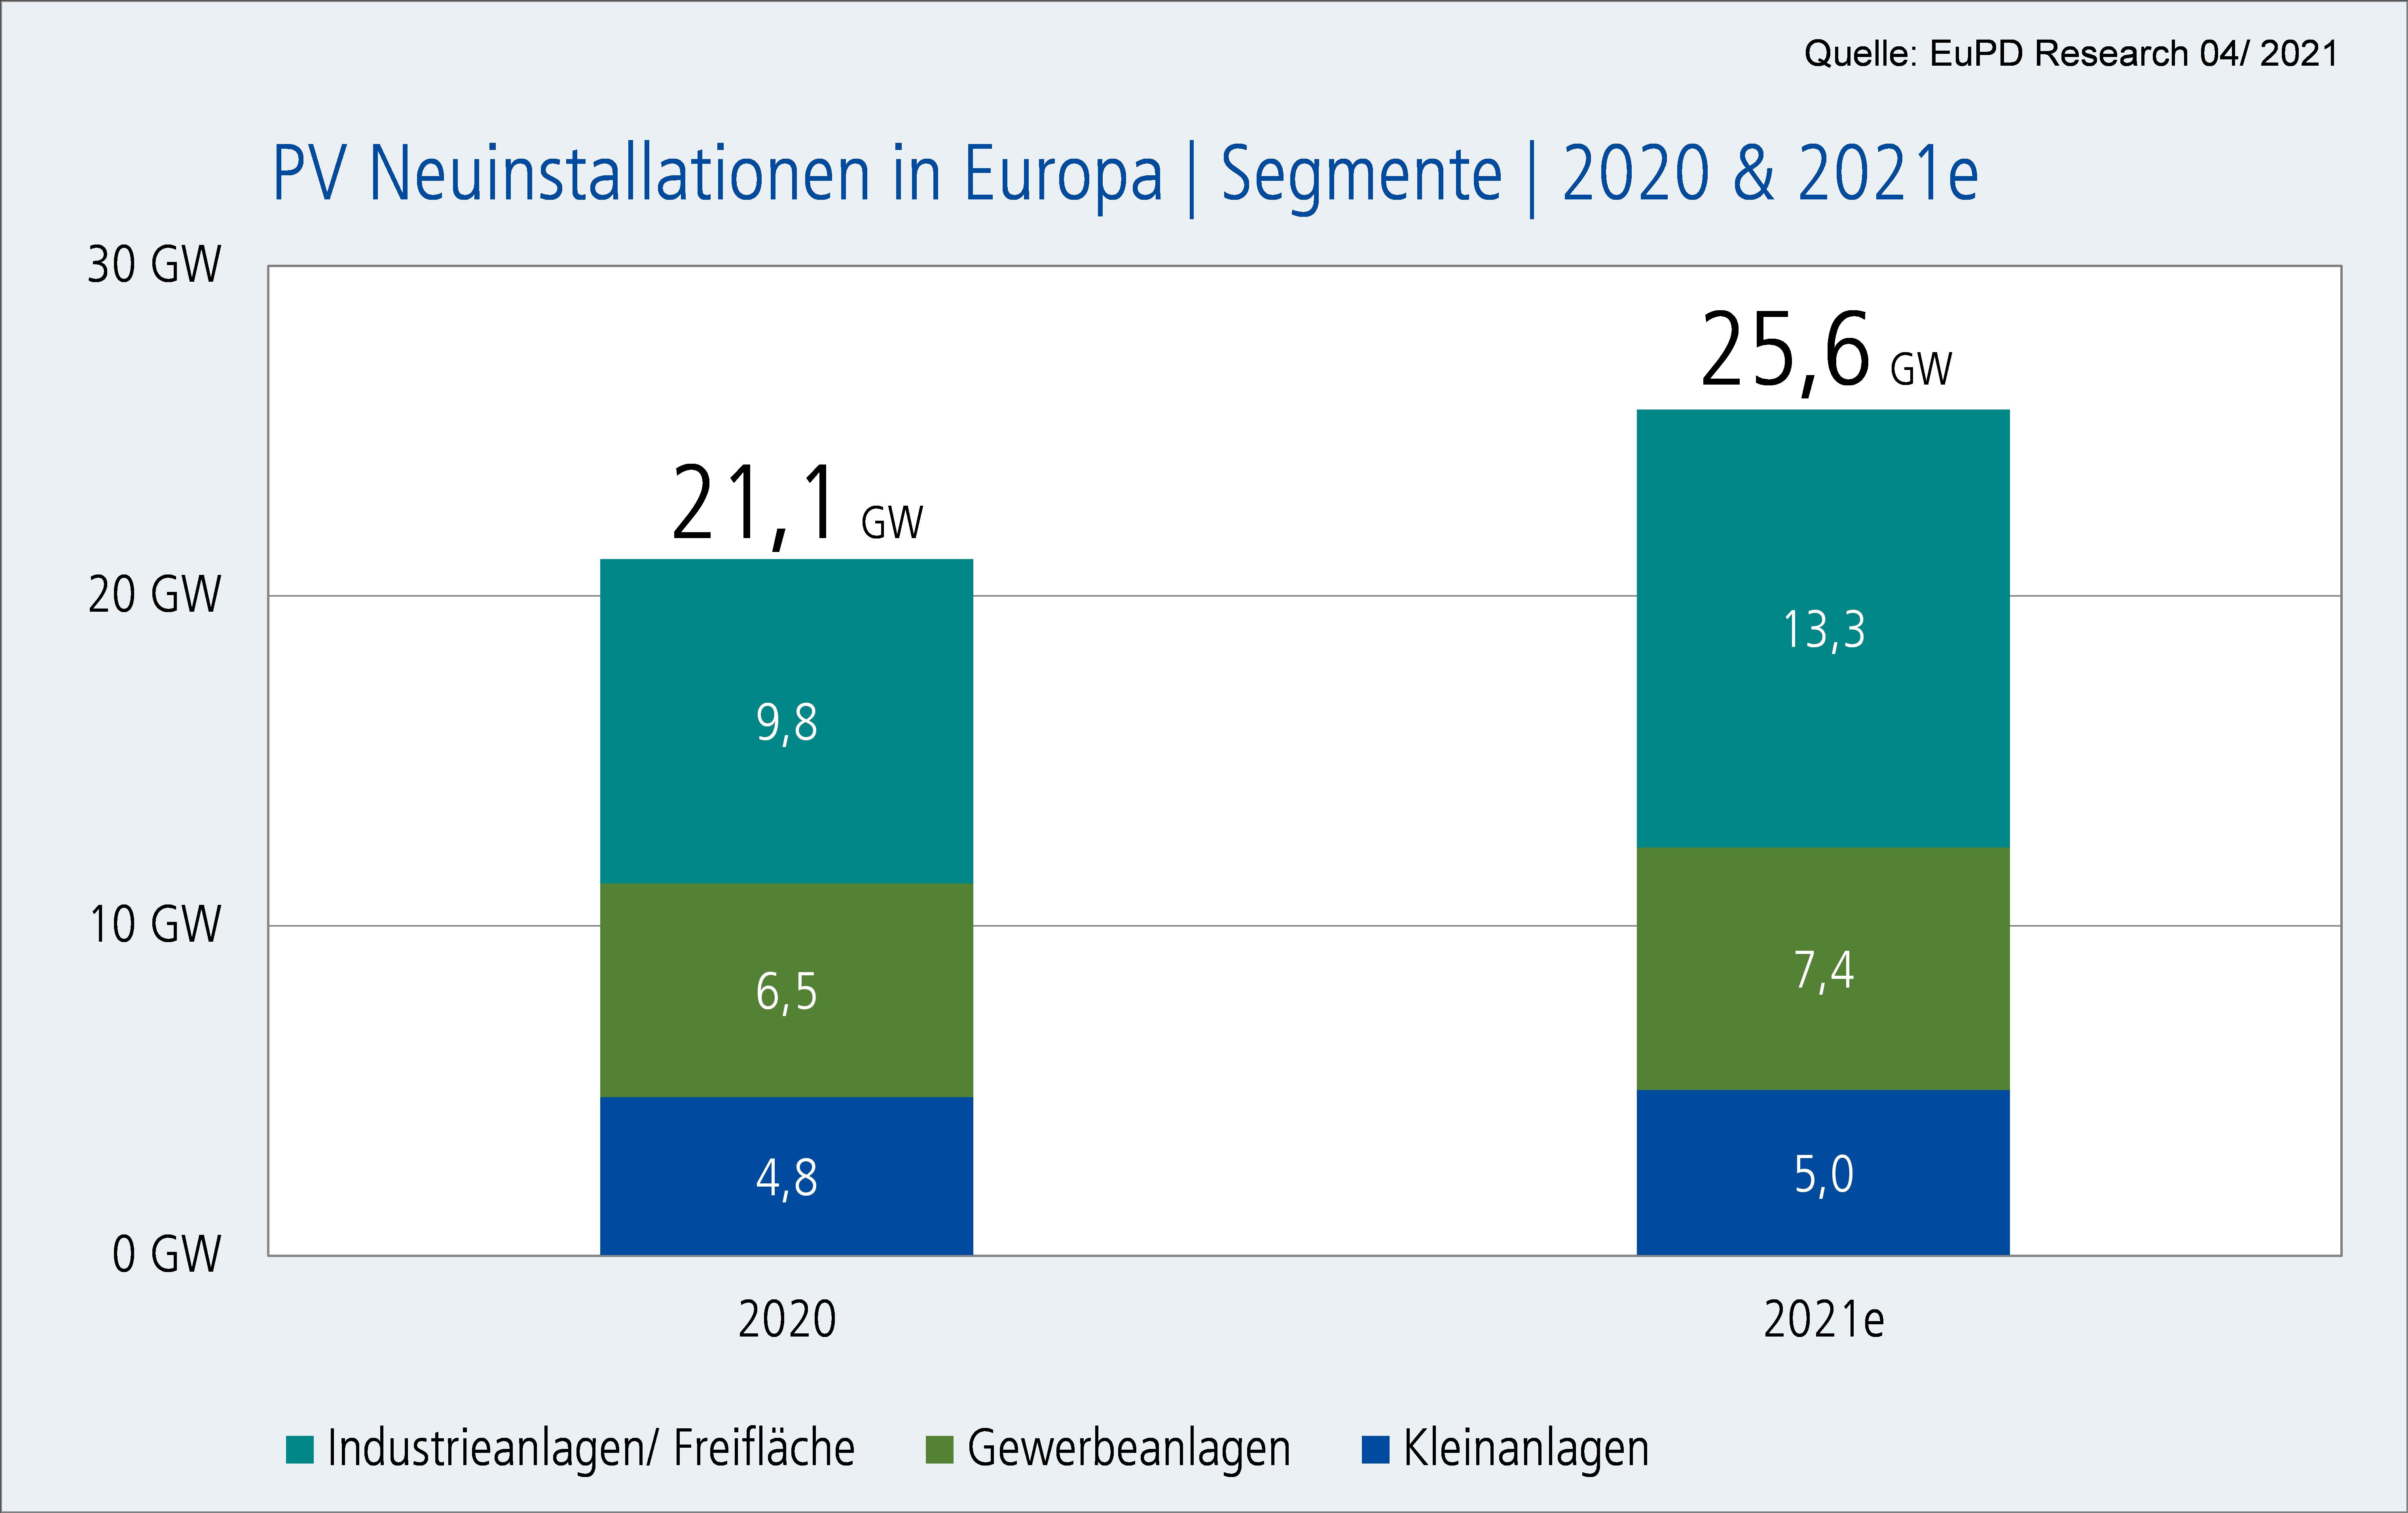 Newly installed PV systems in Europe   Segments in 2020 & 2021e